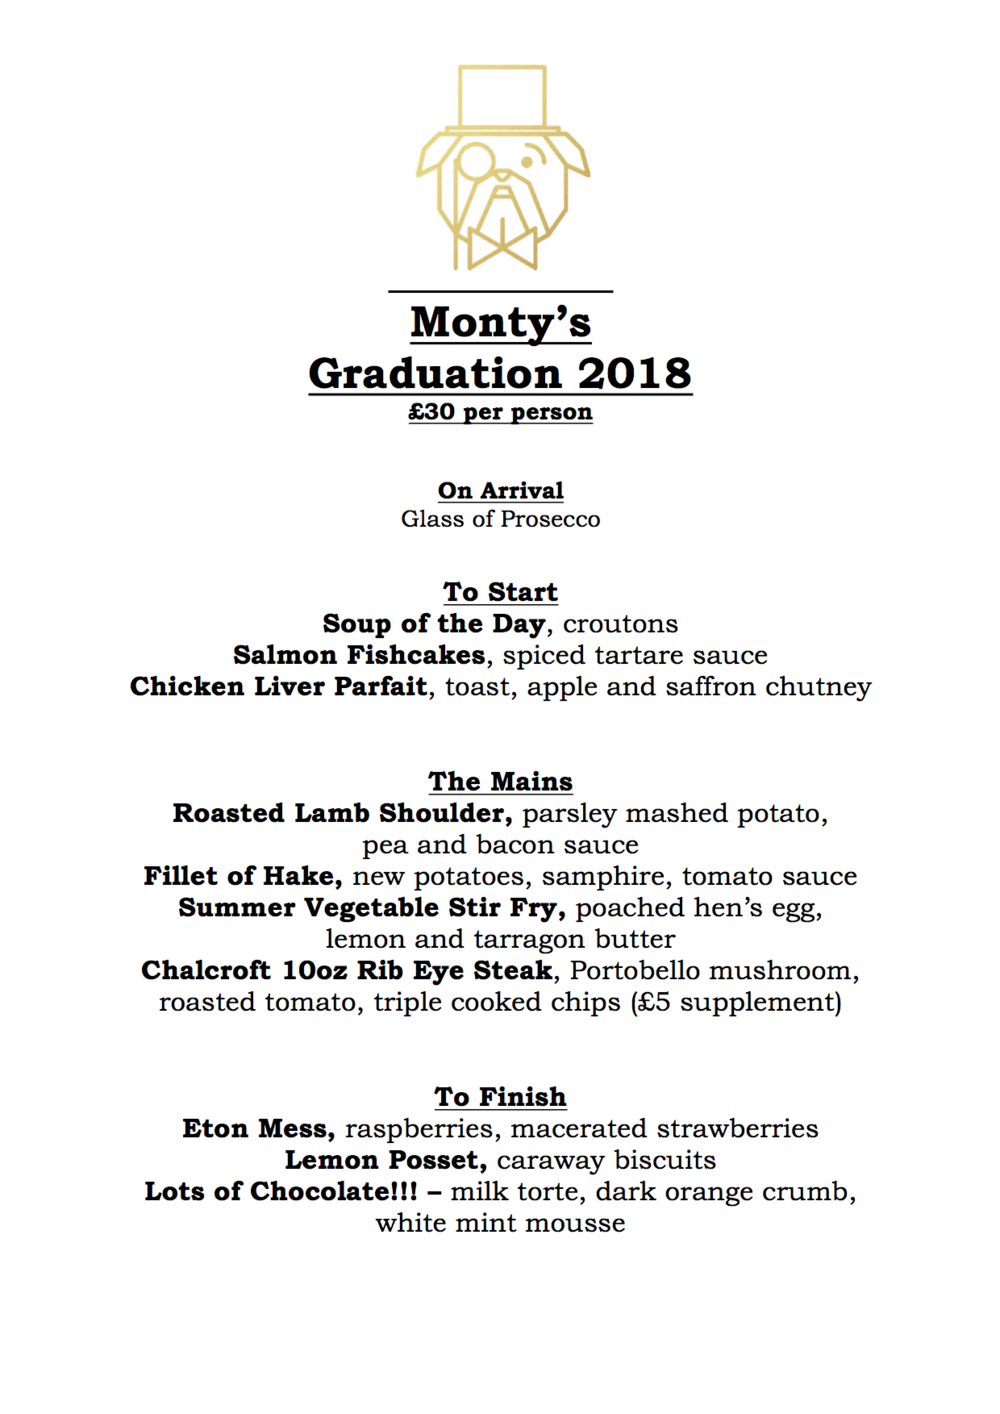 Portsmouth University Graduation Special Menu